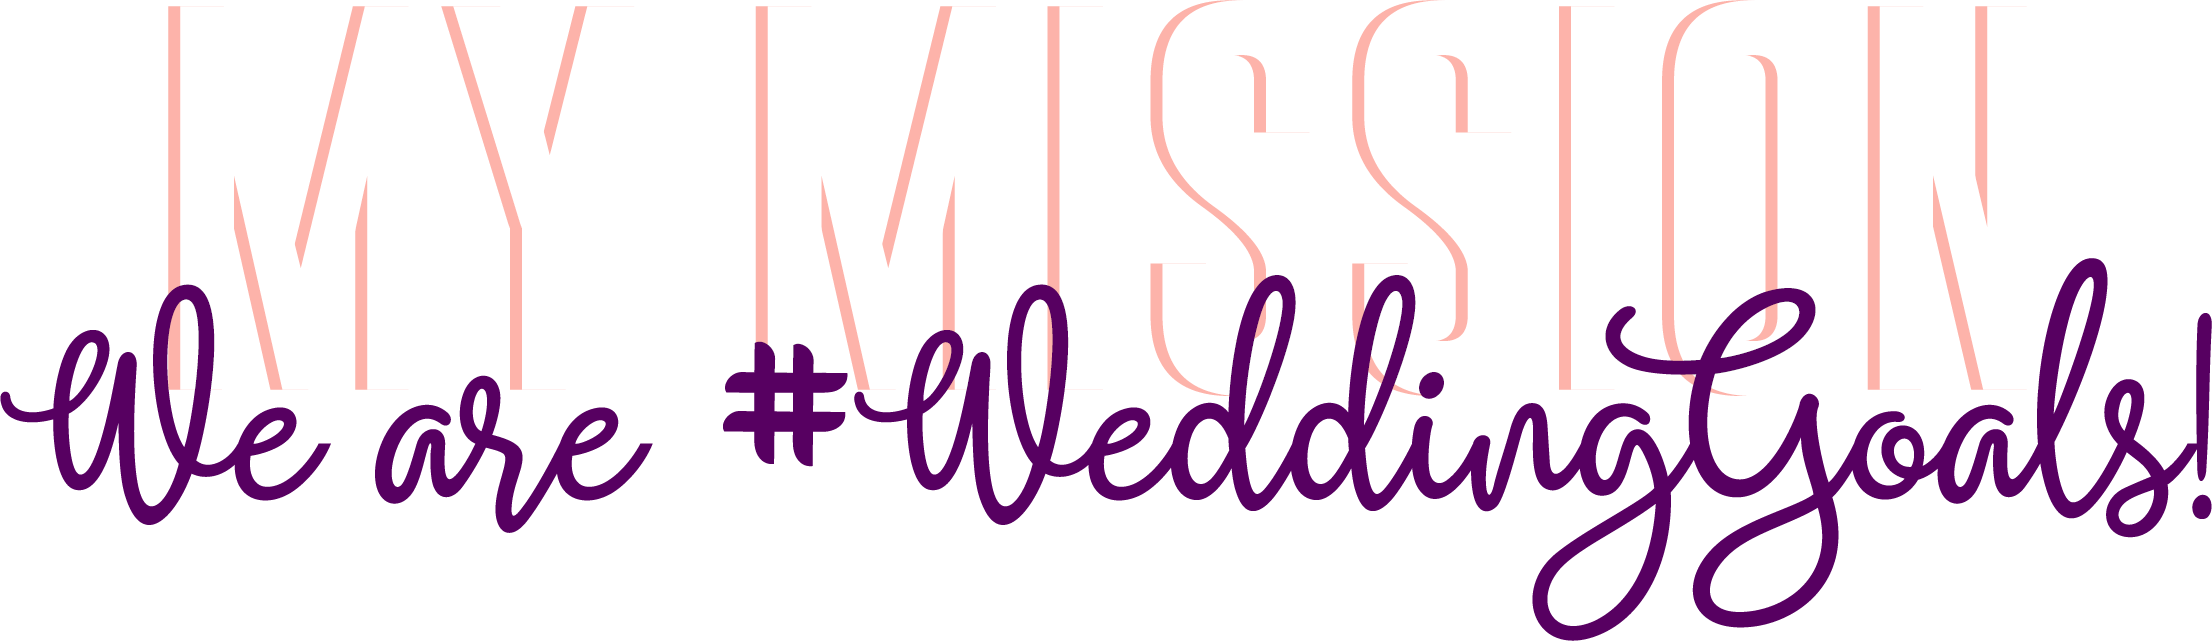 misson purps.png